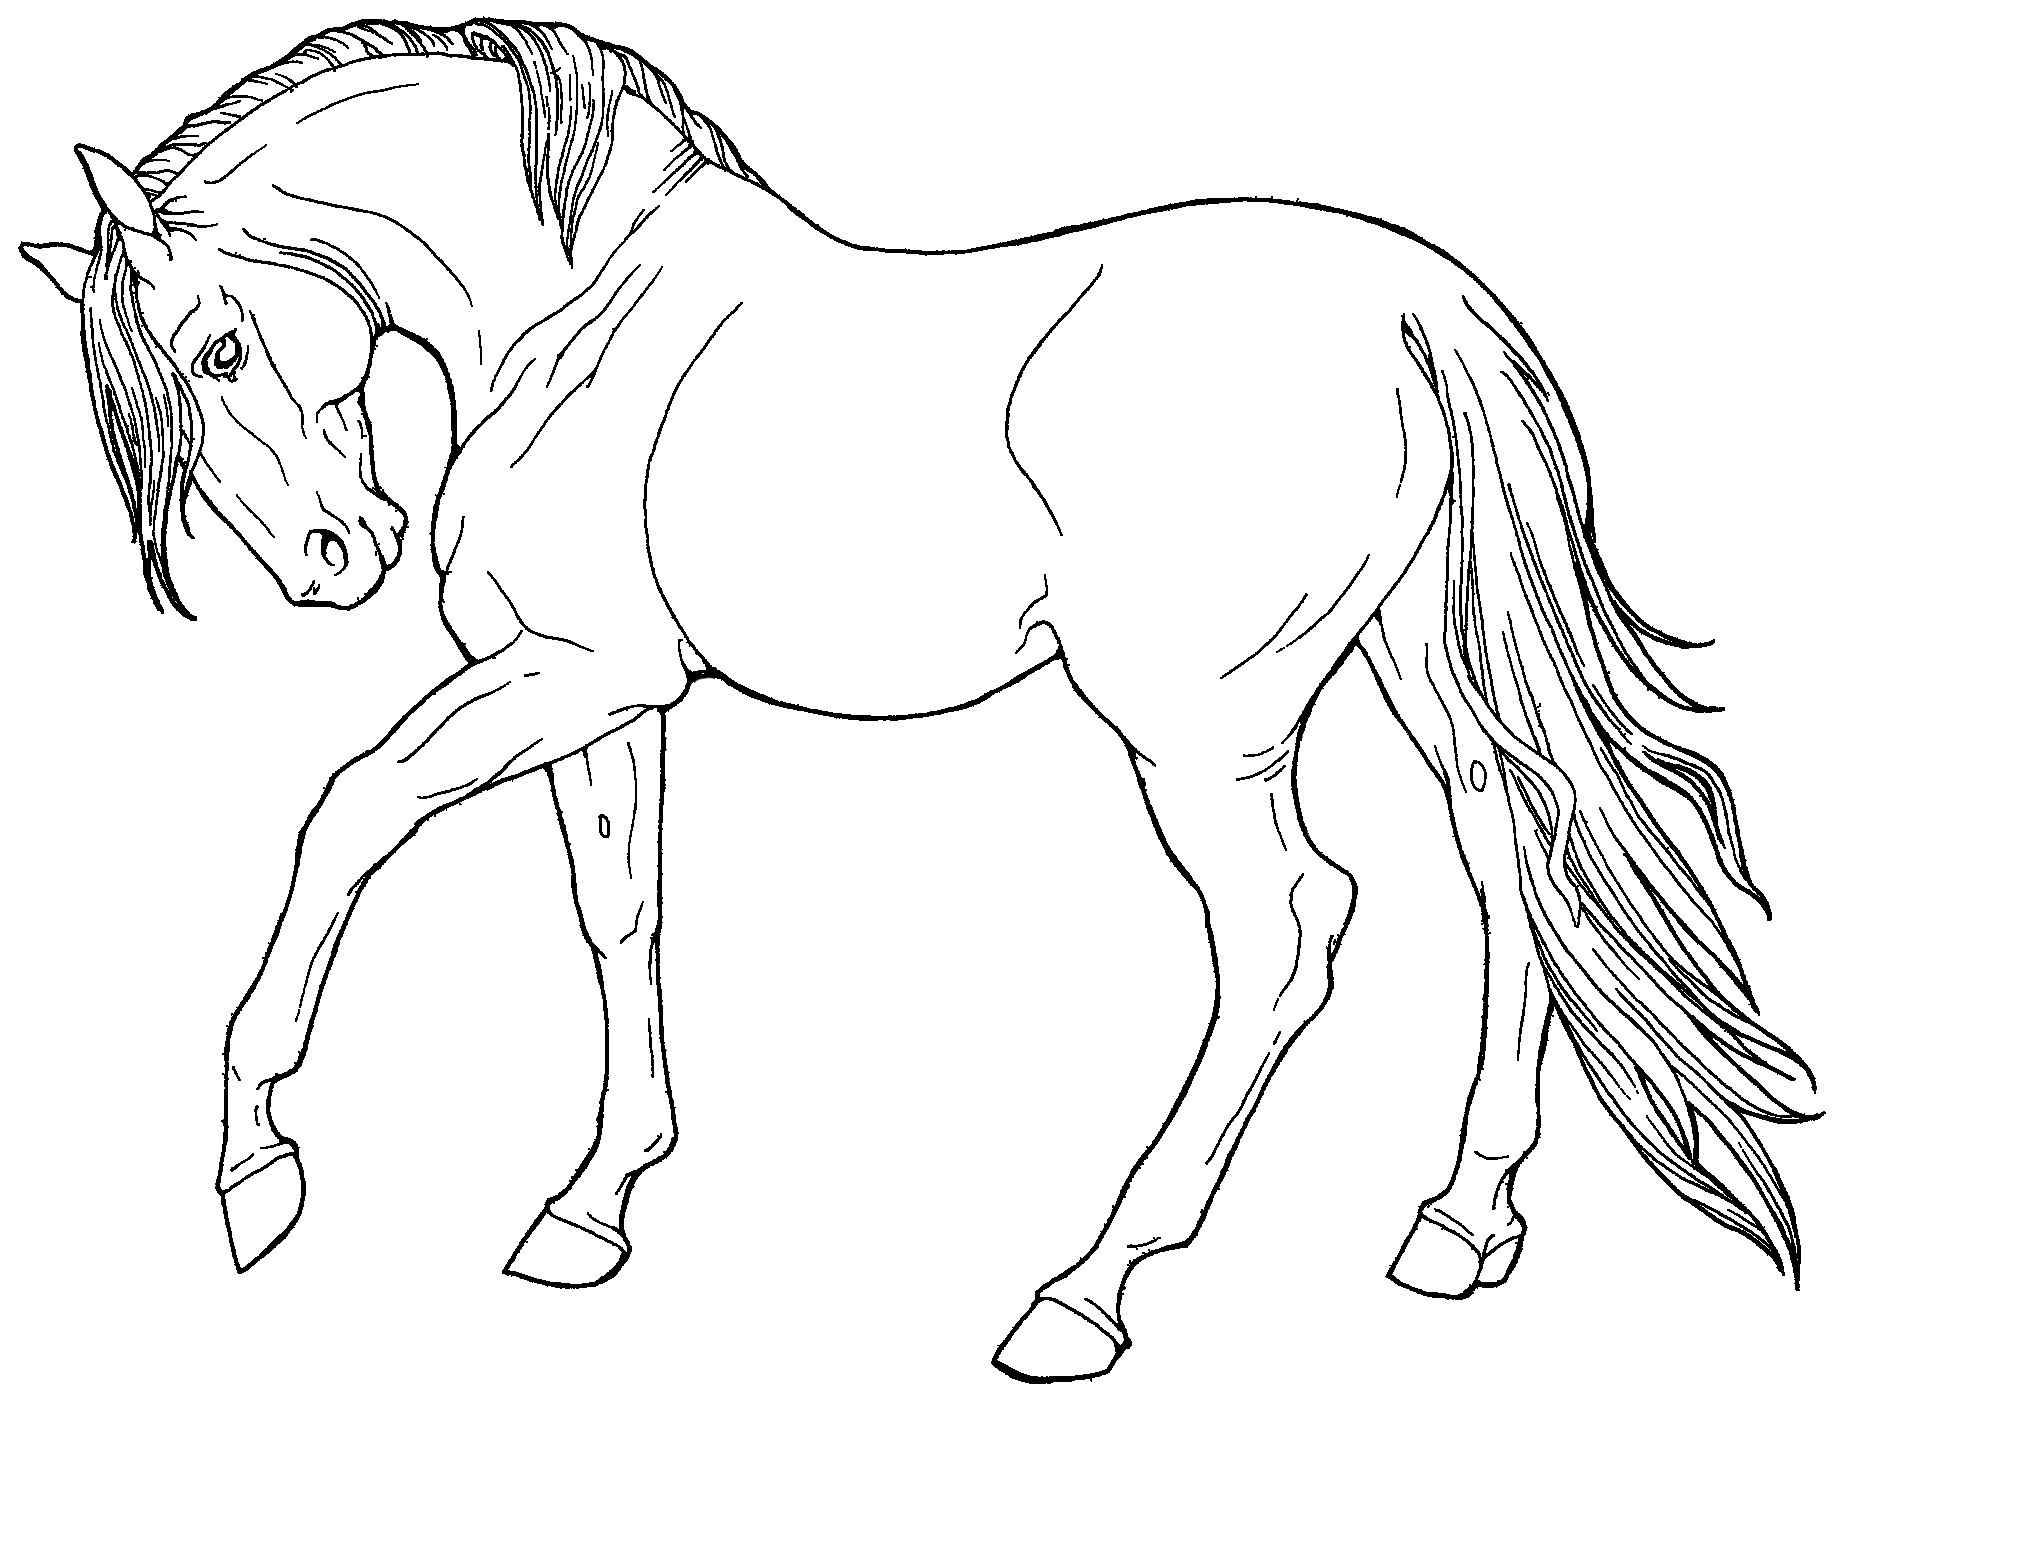 Horse Black And White Drawing at GetDrawings.com | Free ...